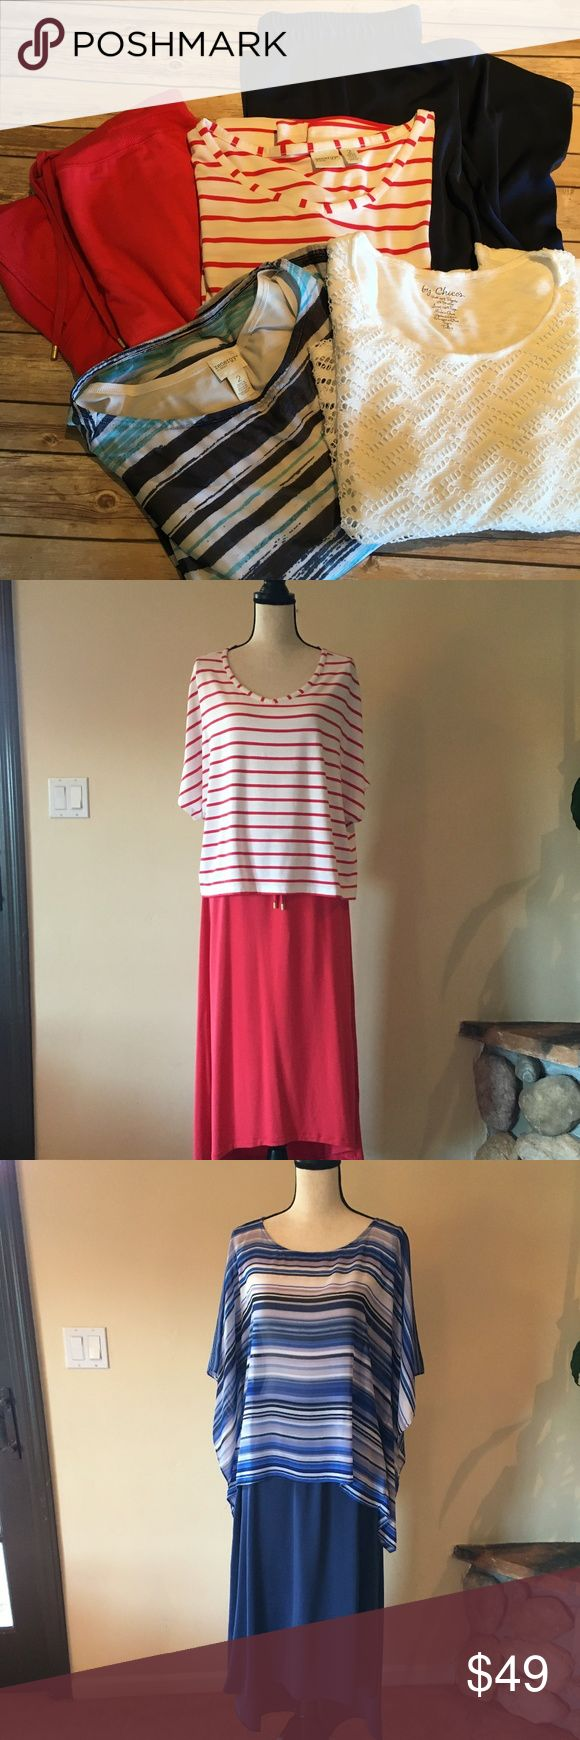 "Chico's Zynergy top & skirt lot, Blue/Pink, M/L This is a beautiful set of versatile skirts & tops. Can be worn casually with a denim jacket or dressed up with blazer.  All in Excellent condition. Price is firm. Skirts are M but run big.  •	Mai tai stripe top large, L; Cotton blend, Bust 24.5"" x length 23"" •	Mai Tai skirt m/l; Cotton blend, length 28.5 - 35.5""  •	Blue-white strip top large; Nylon blend, bust 2"" x length 25""  •	Blue skirt m/l; Polly blend, Length 28"" - 38"" •	White top large…"